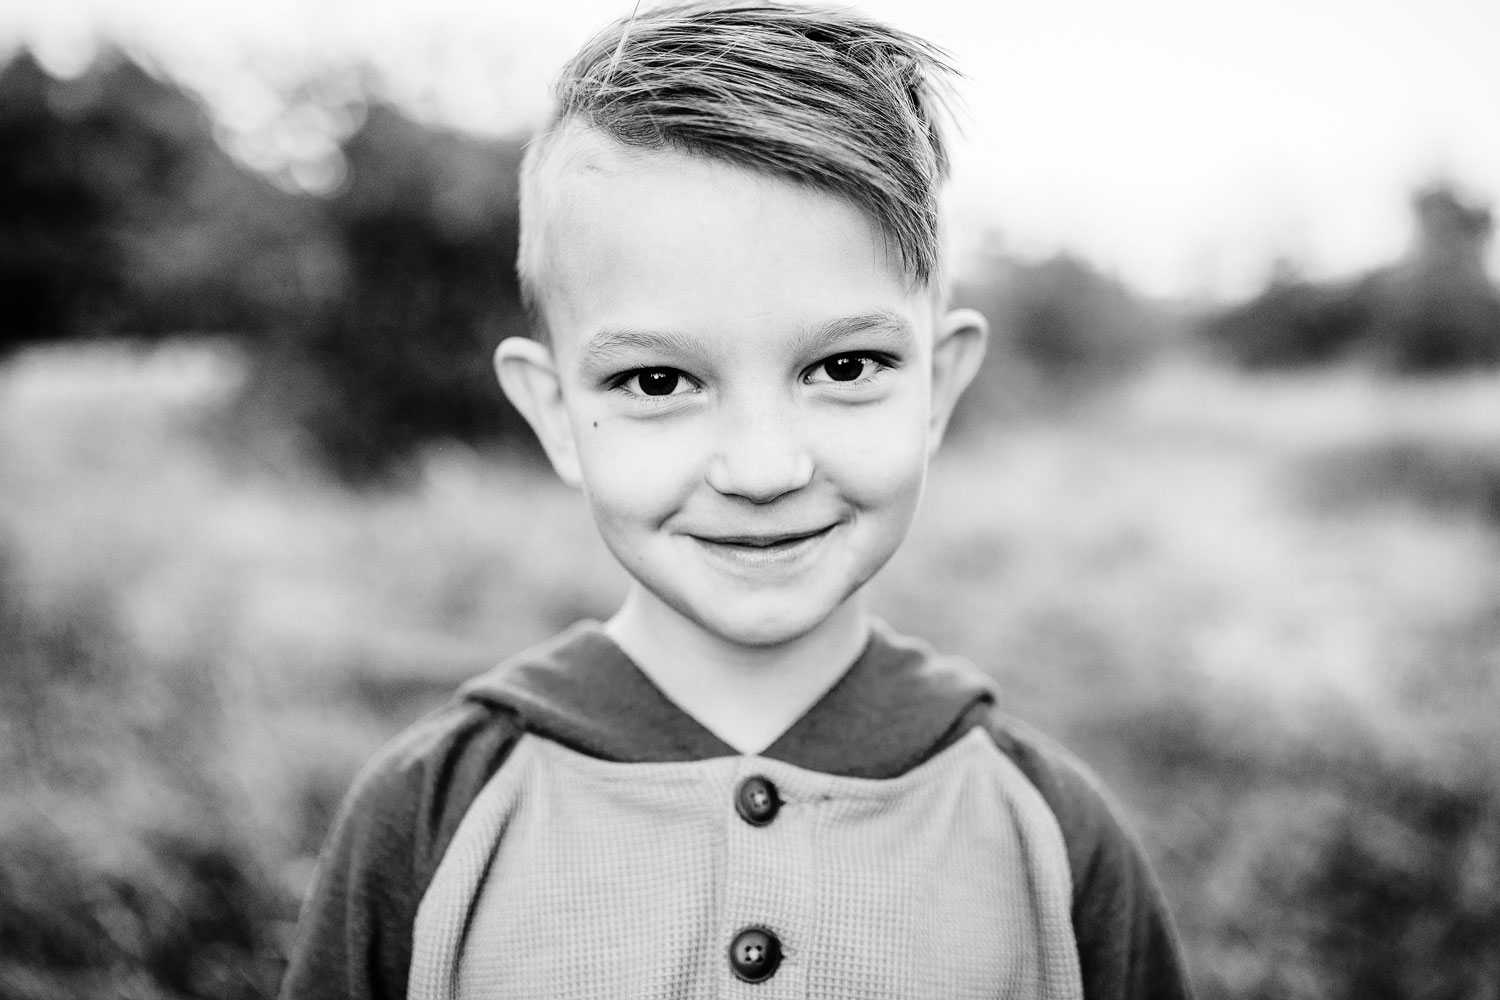 A young boy looks at the camera for his portrait during a lifestyle family photo session with Amy Wright Photography in Roseville, California.